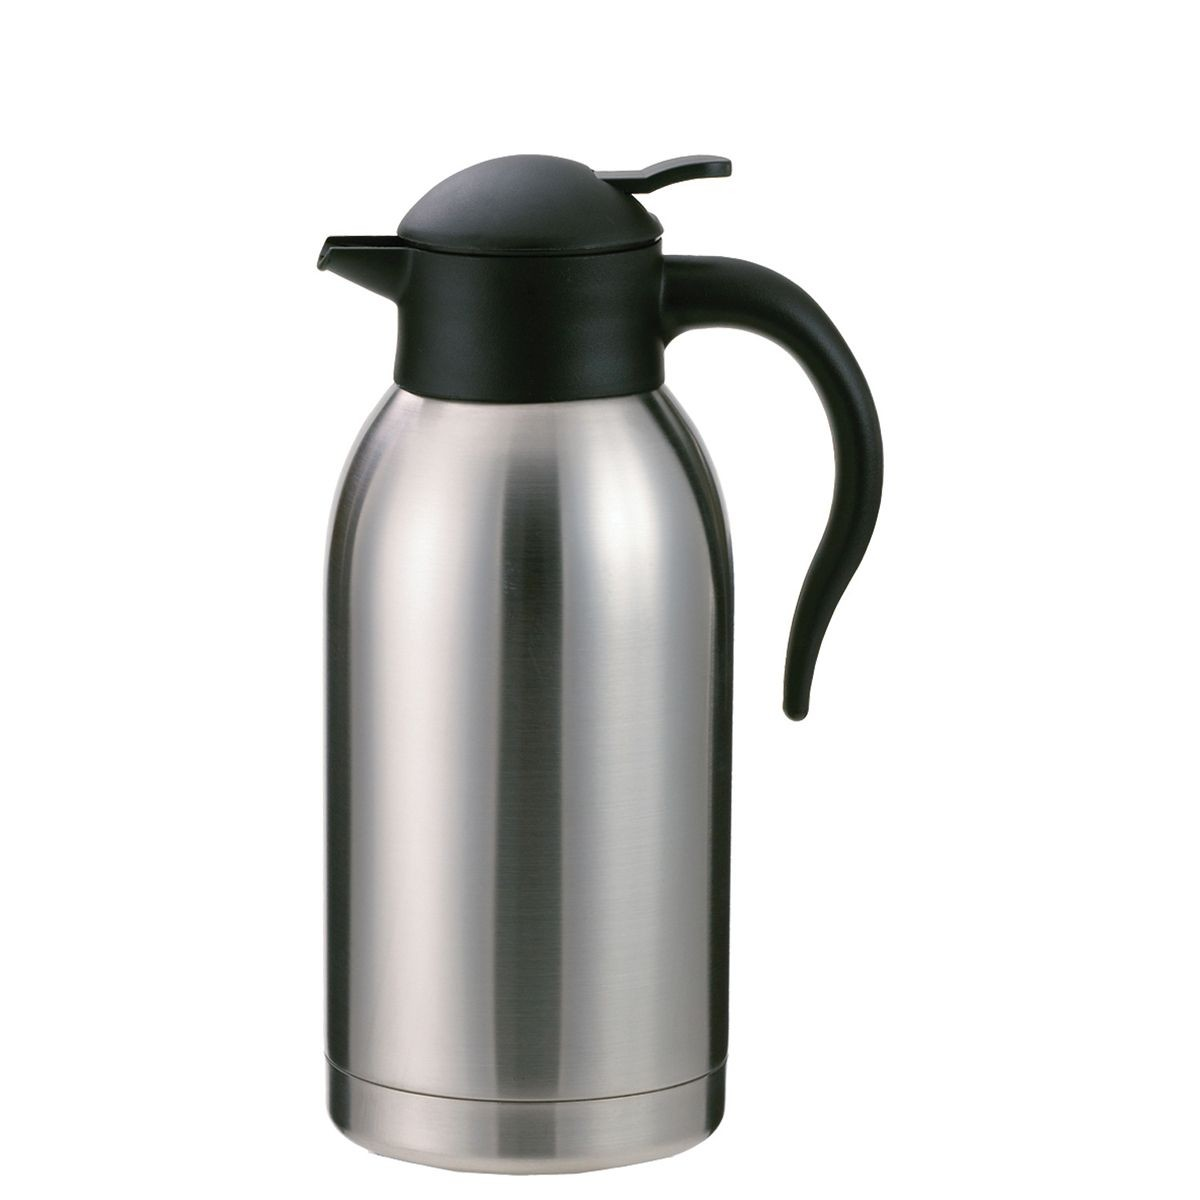 Service Ideas SJ20SS Steelvac Stainless Vacuum Carafe with Push Button Lid, 2 Liter